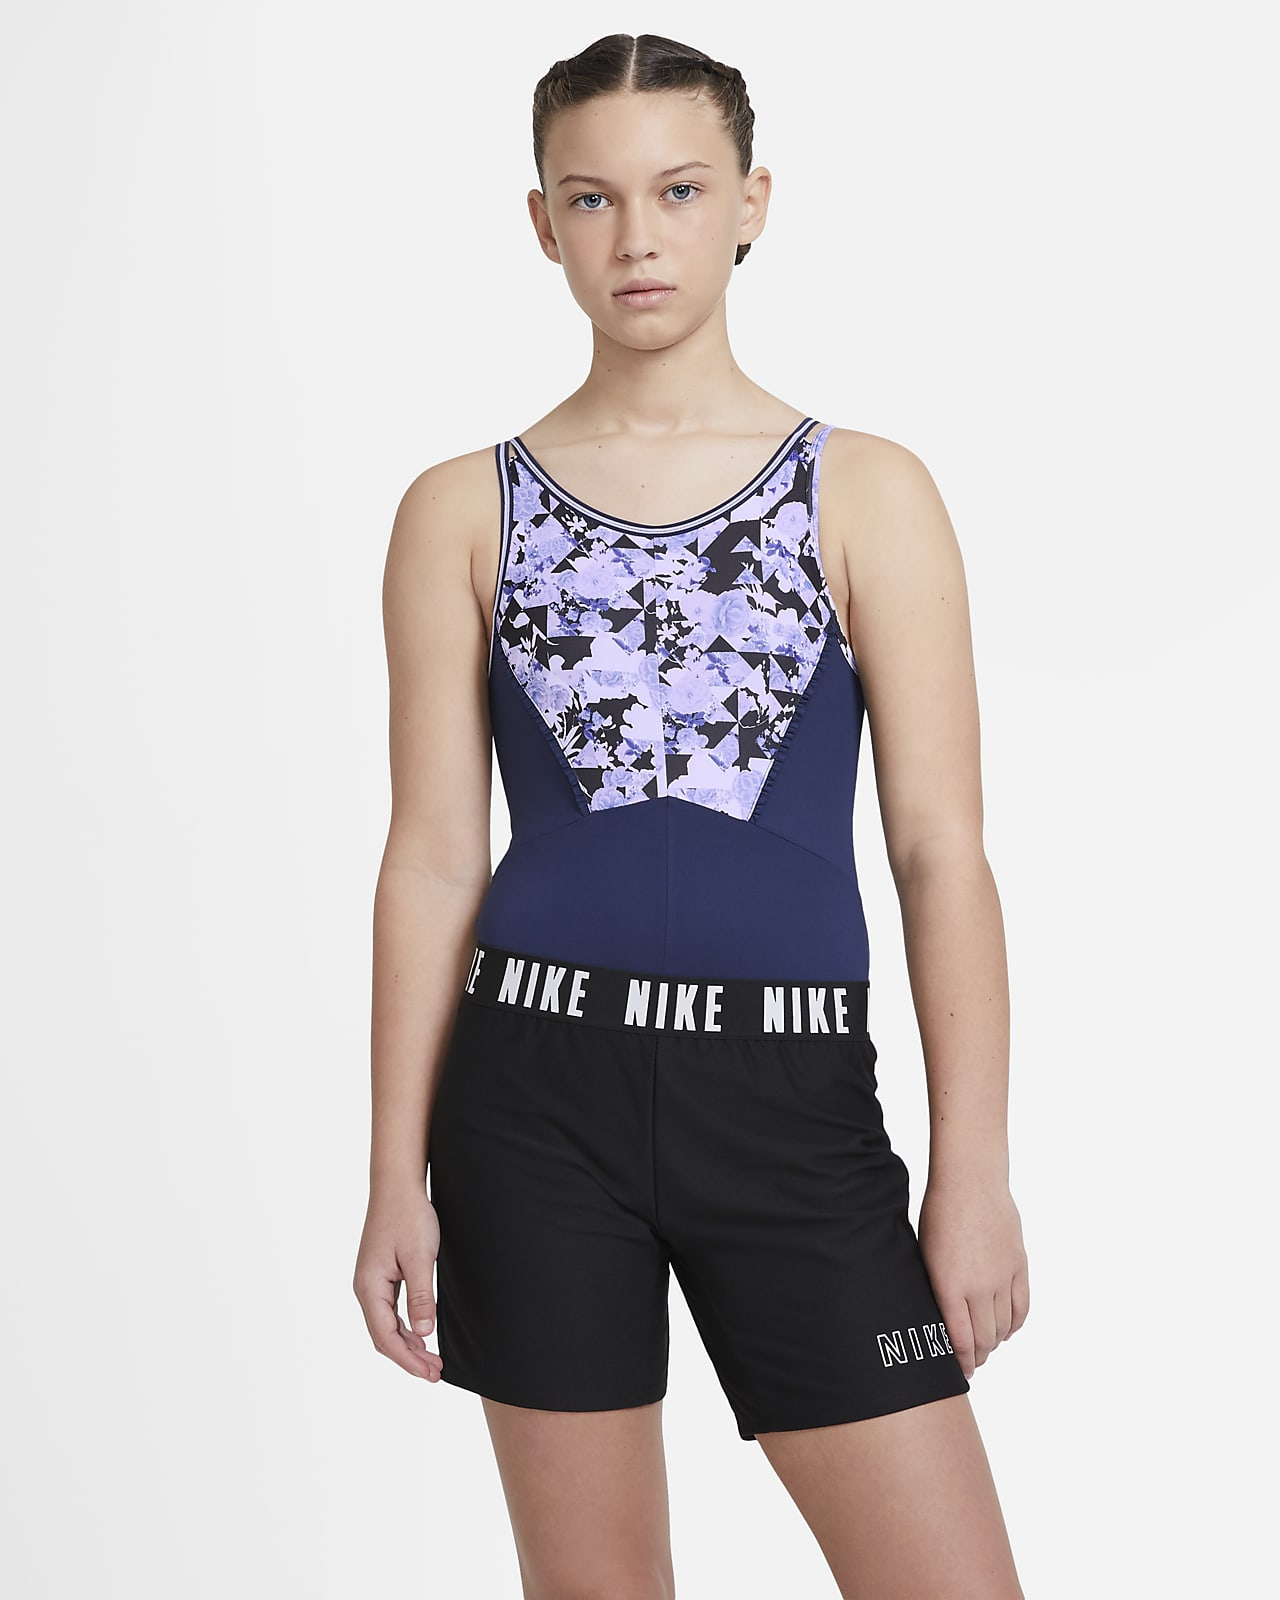 Nike Older Kids' (Girls') Bodysuit